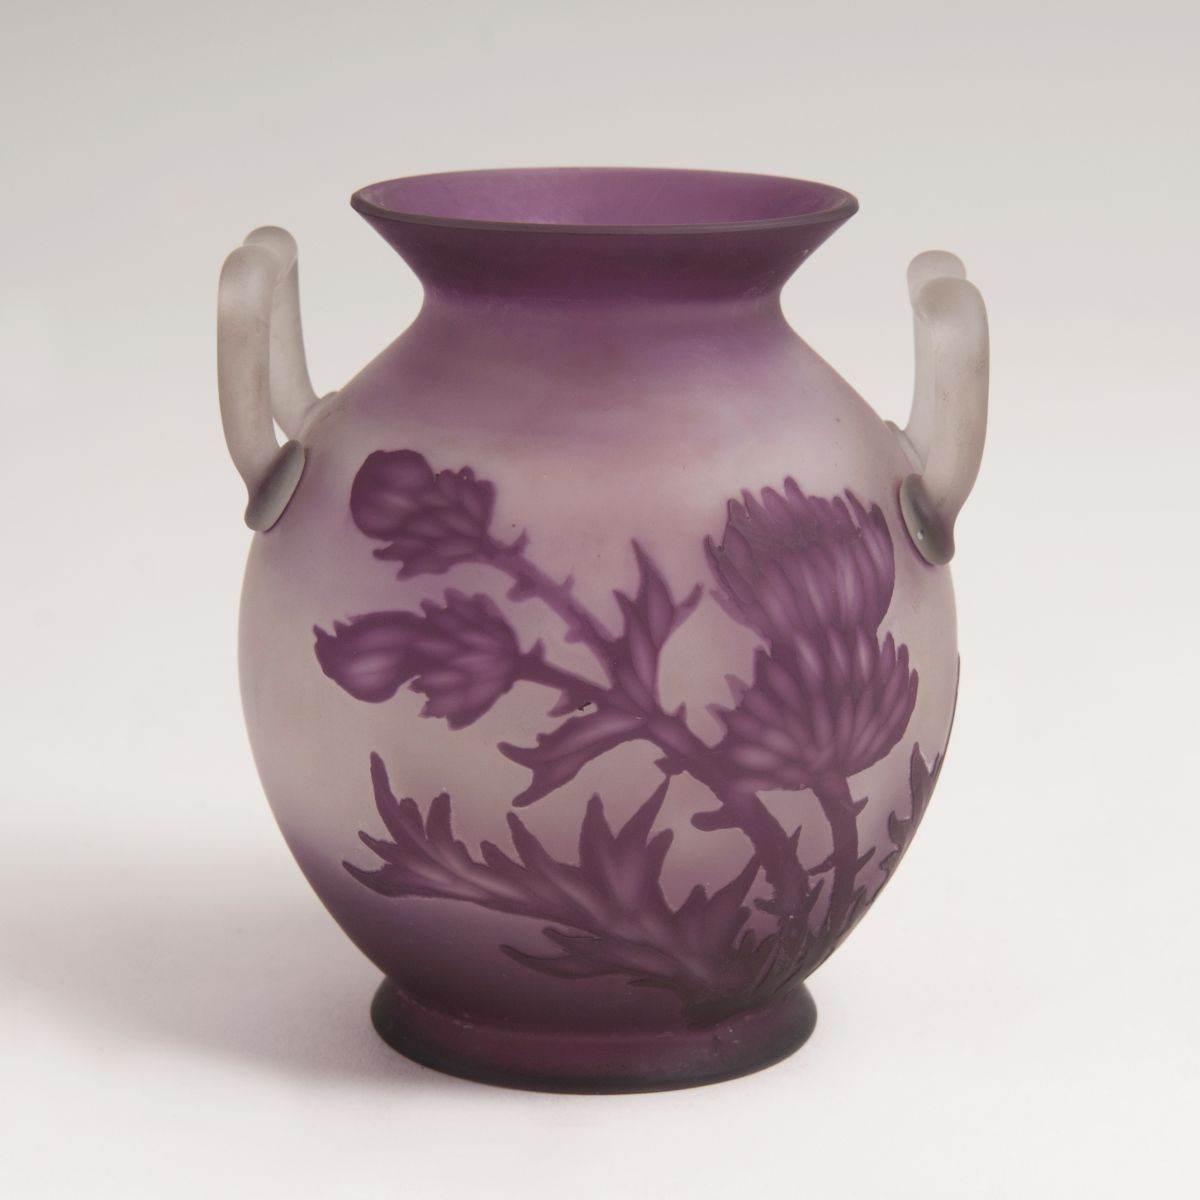 A Small Double Art-nouveau Vase with Thistles